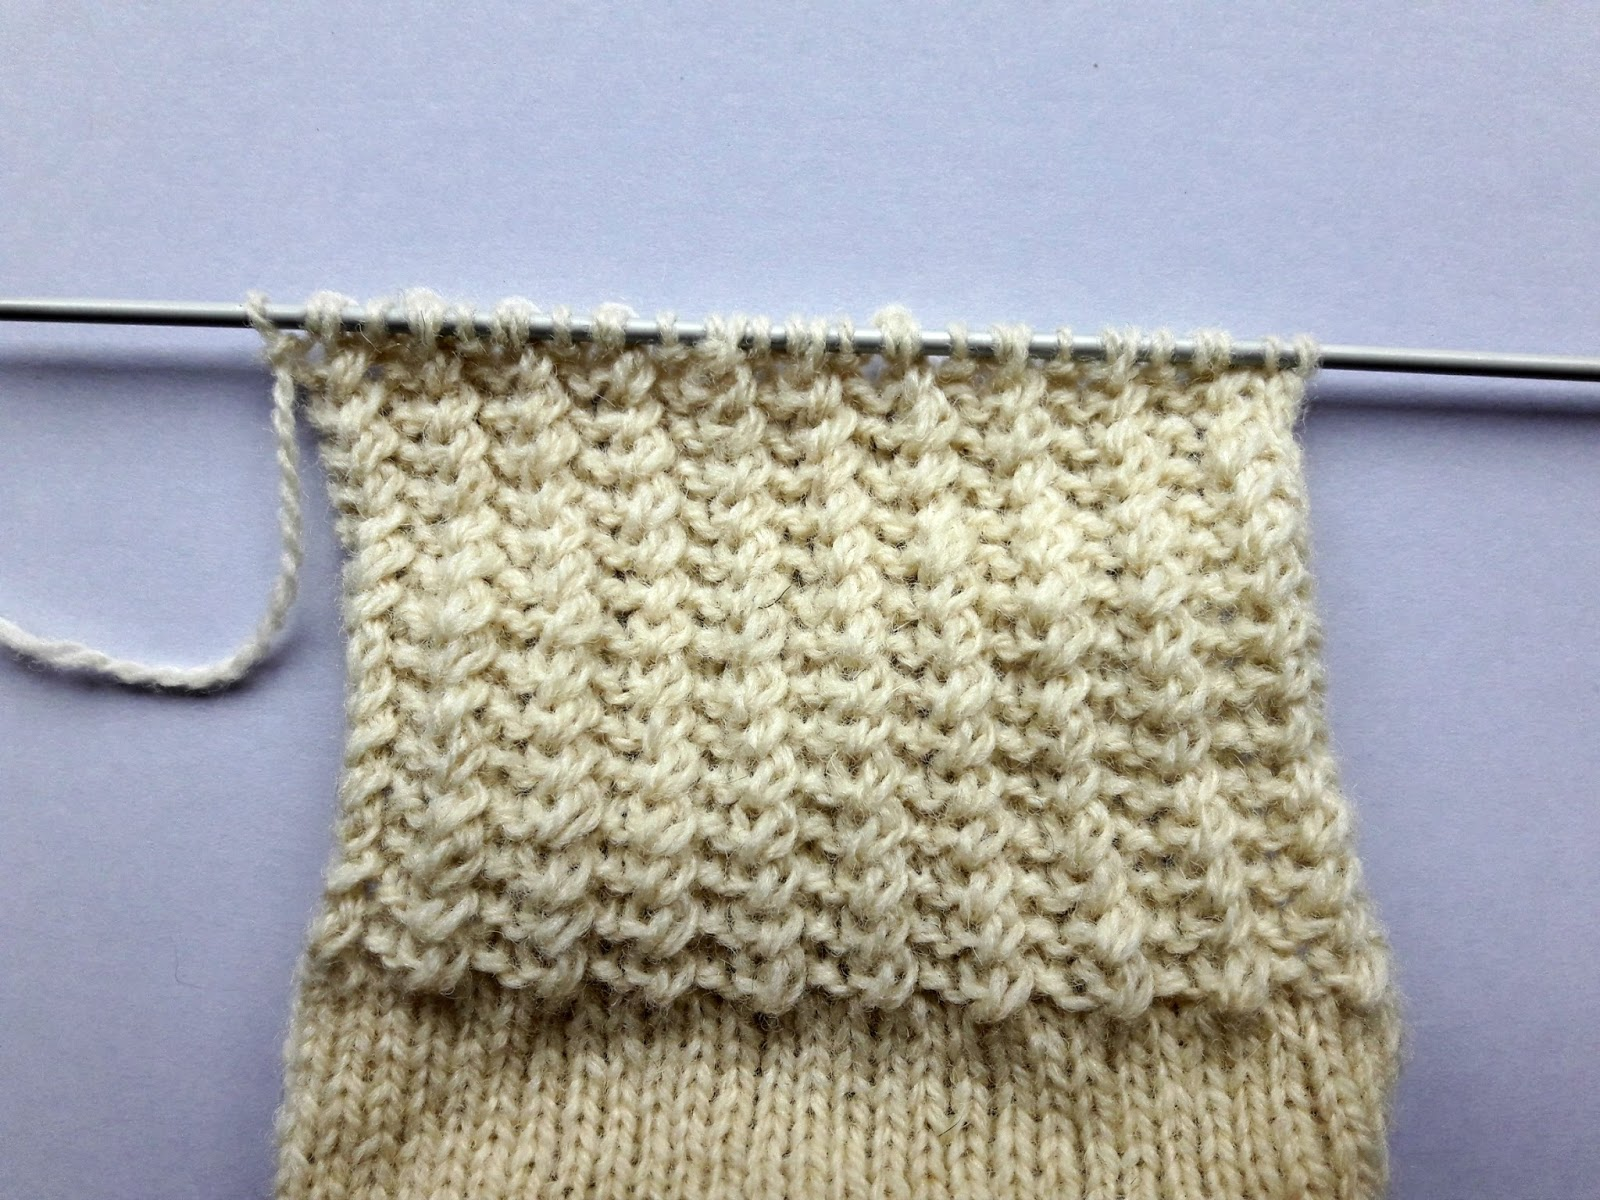 Knitting Pick Up Stitches Heel Flap : Winwick Mum: Easy cable socks - free pattern and tutorial